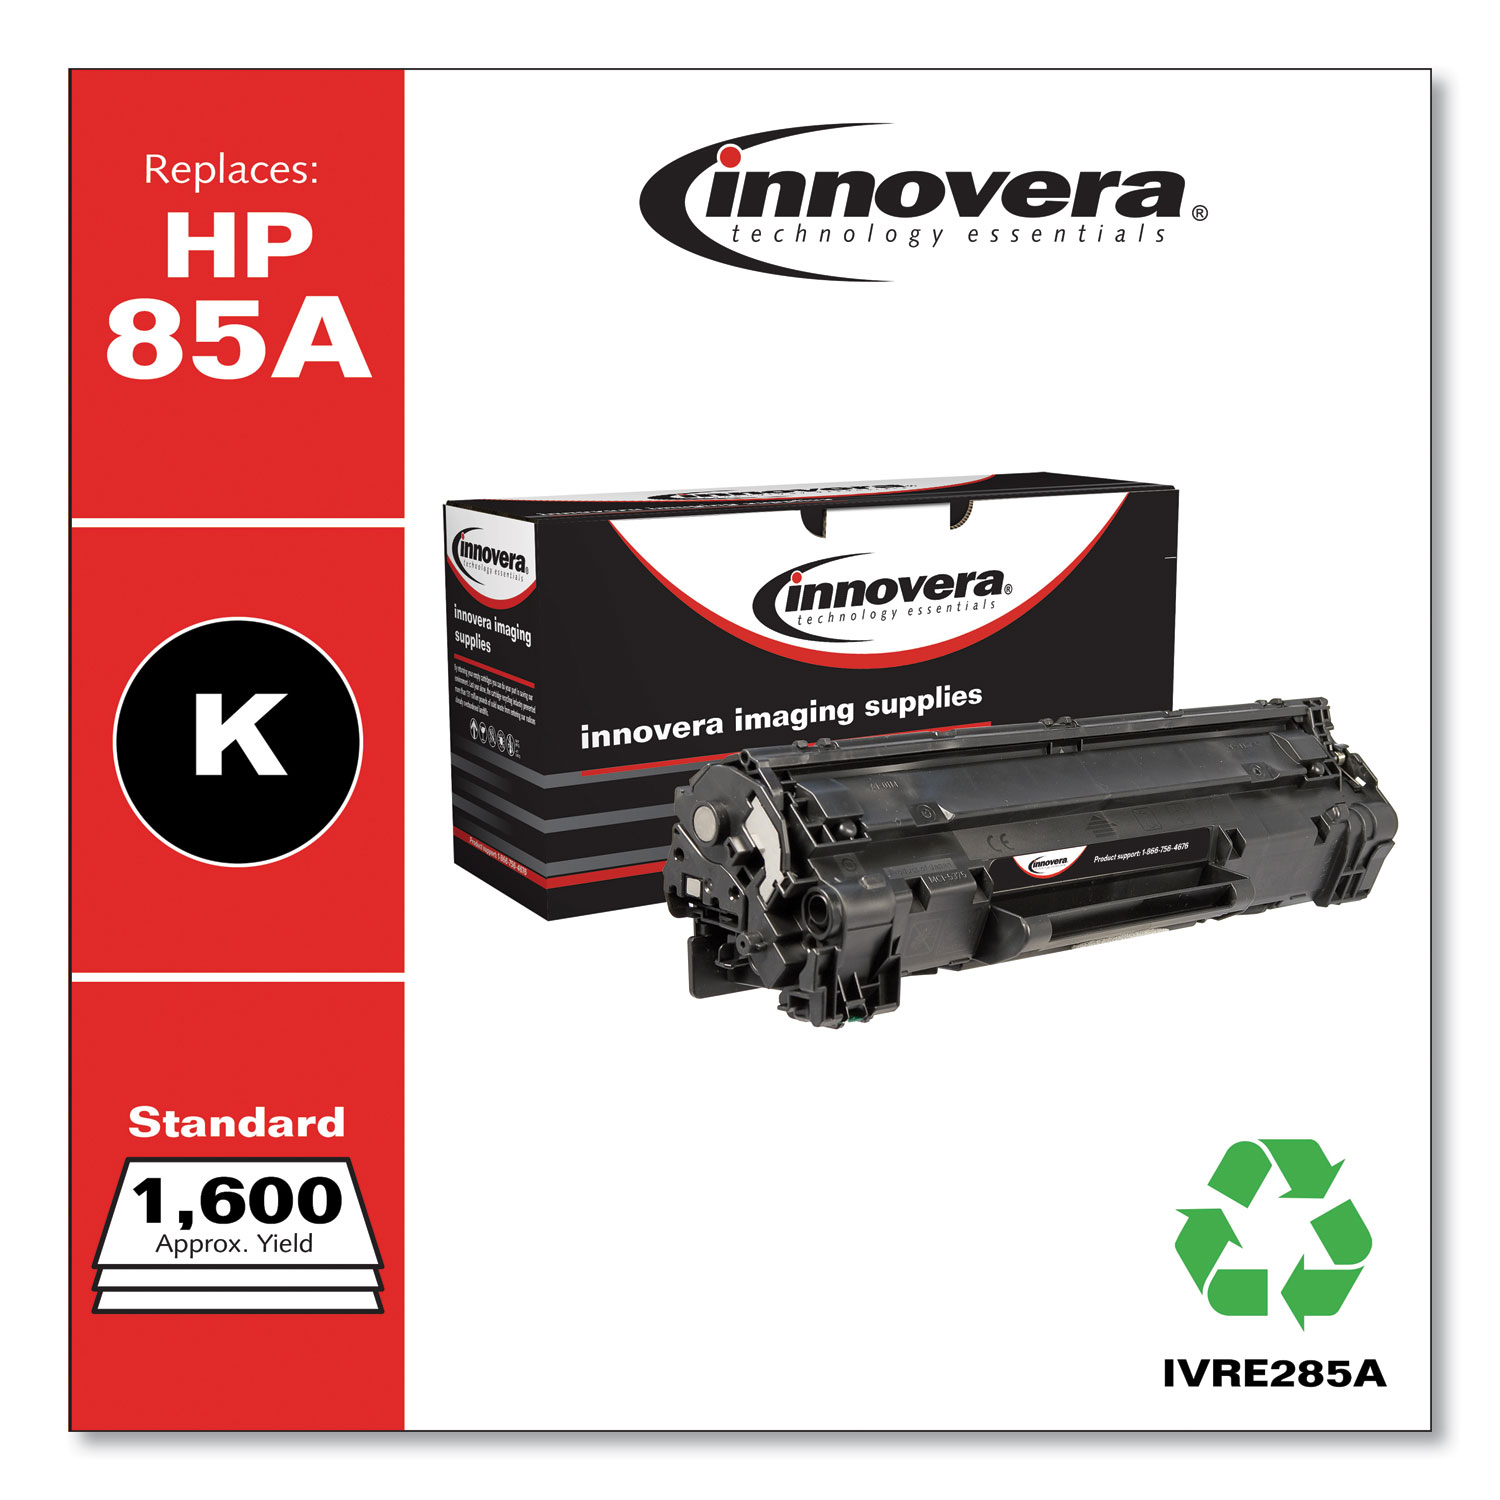 Remanufactured Black Toner Cartridge, Replacement for HP 85A (CE285A), 1,600 Page-Yield